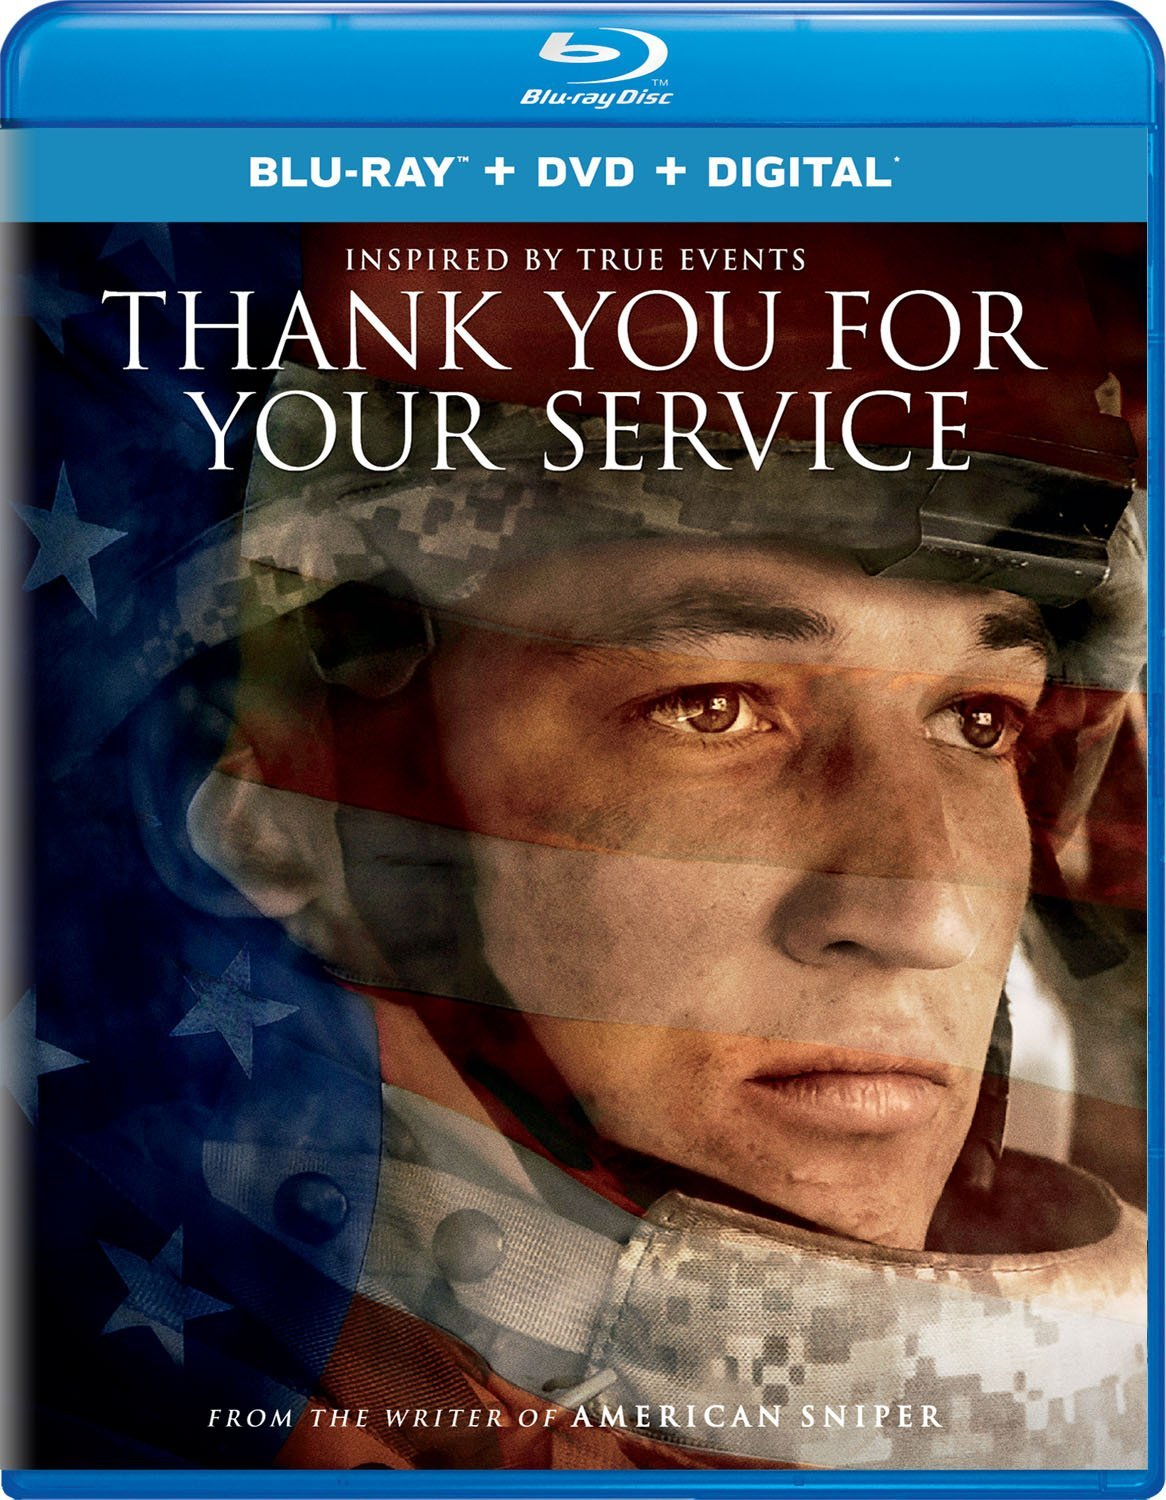 THANK YOU FOR YOUR SERVICE Blu-ray